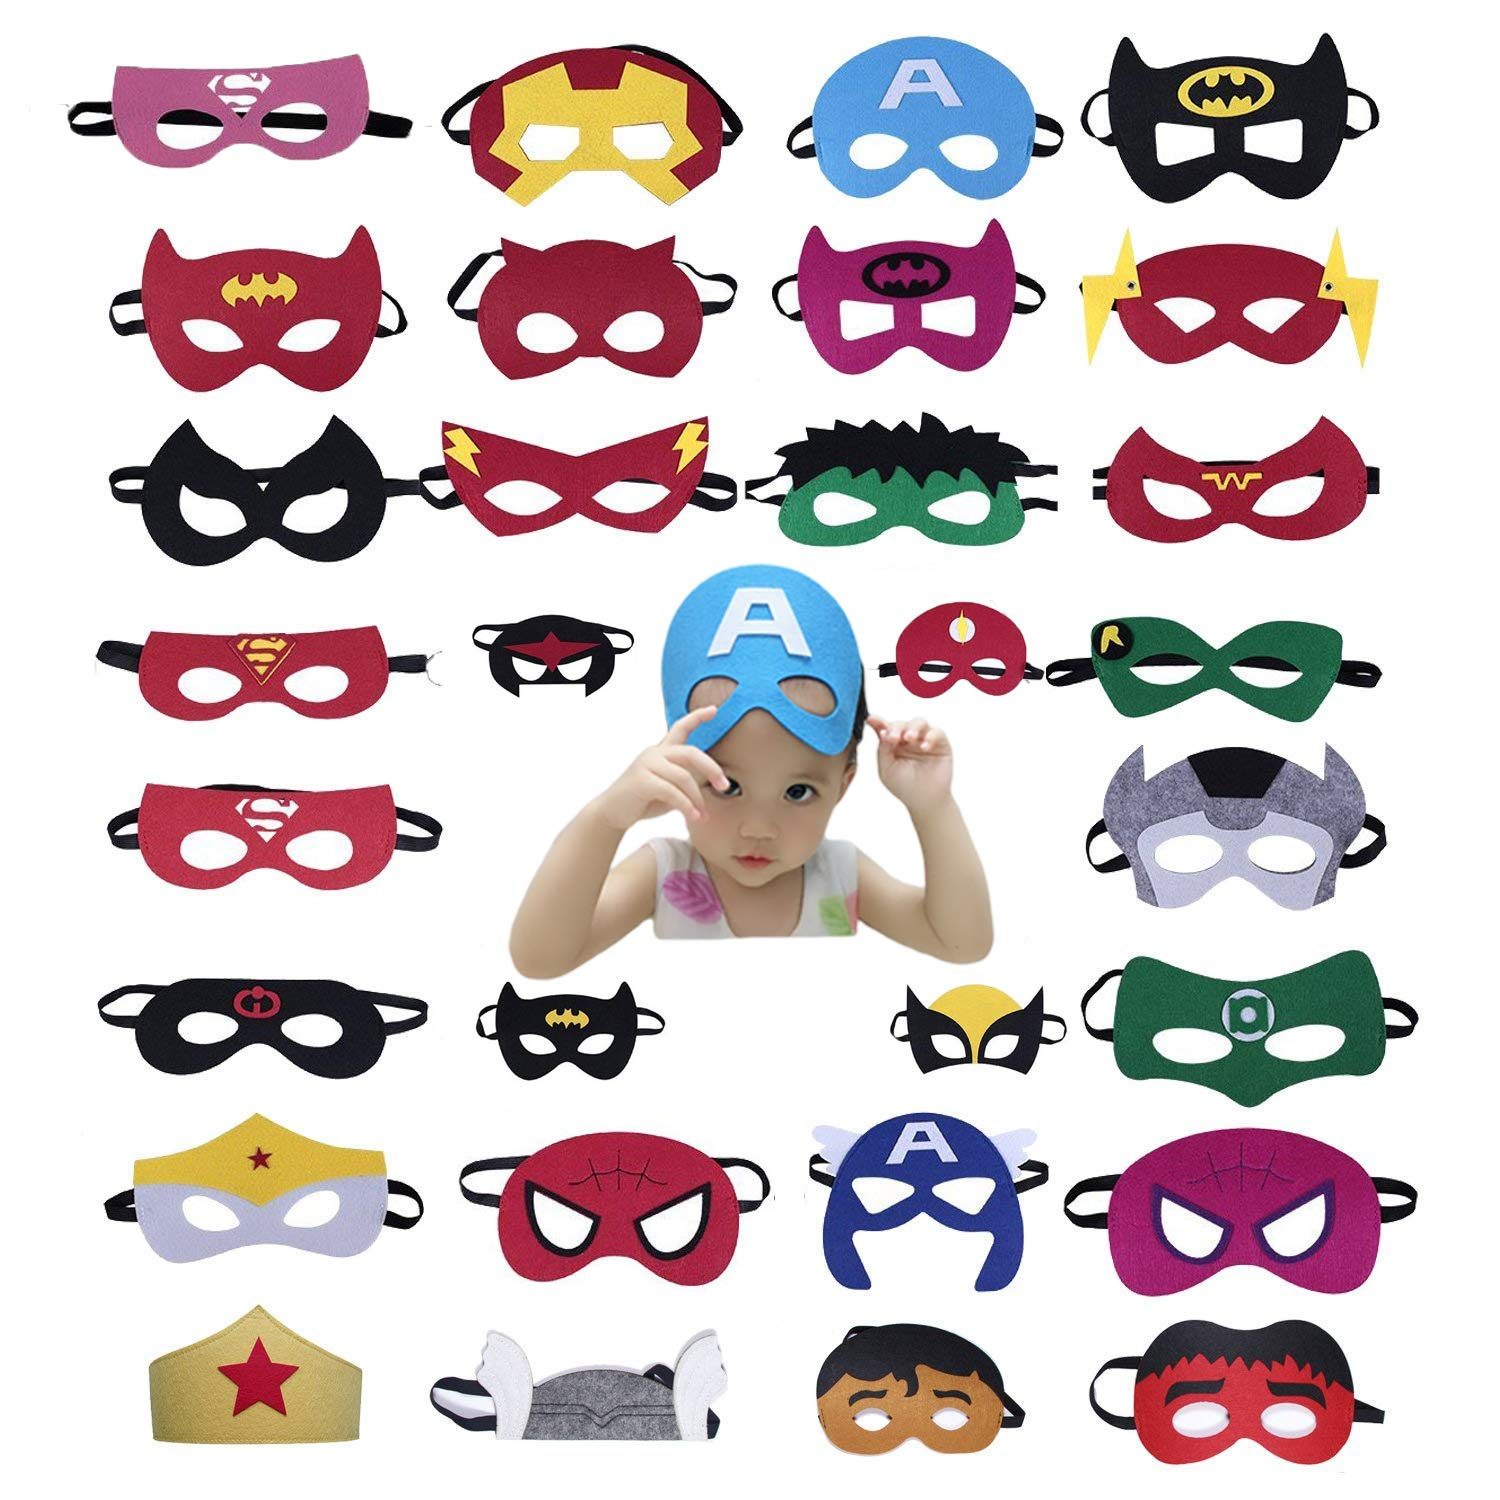 HZJY Superhero Masks 30 Packs Perfect for Birthday or Festival Party Dress up Costume Masks